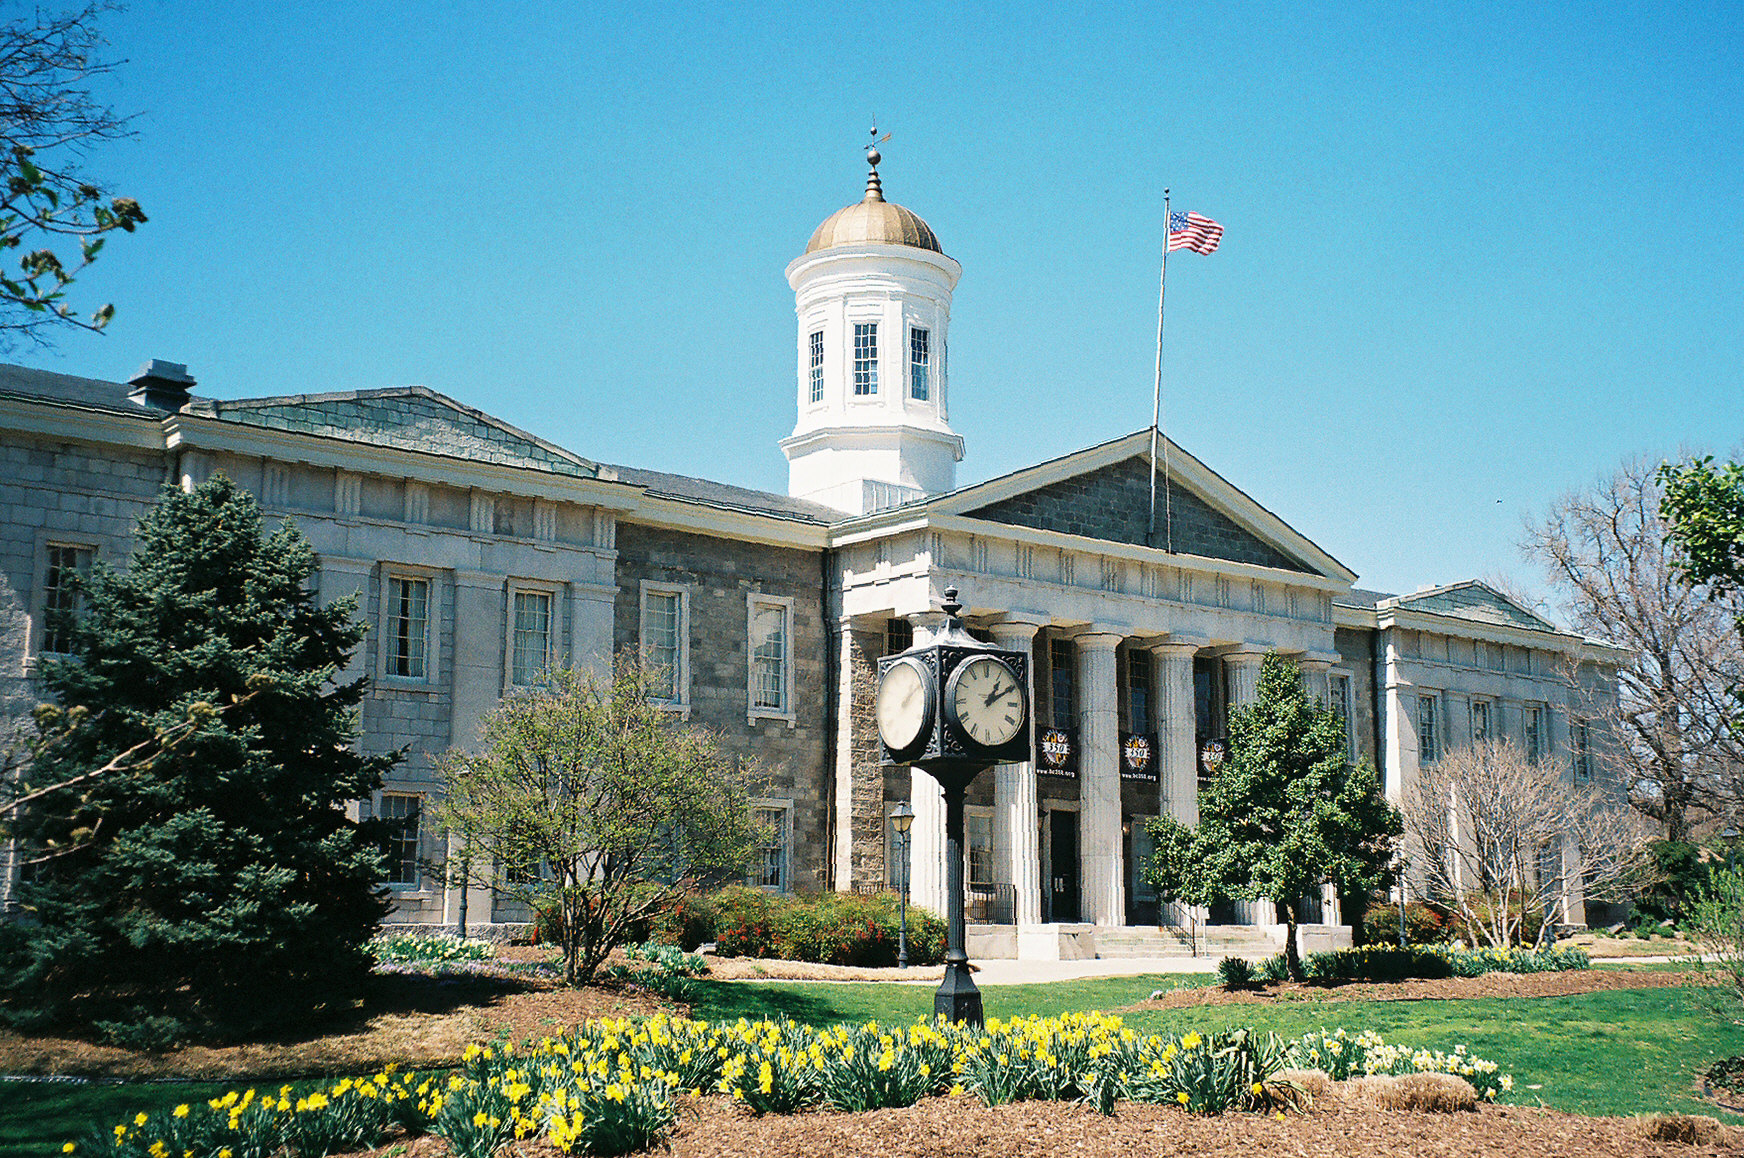 The Towson (Md.) Courthouse, with landscaping by Oehme